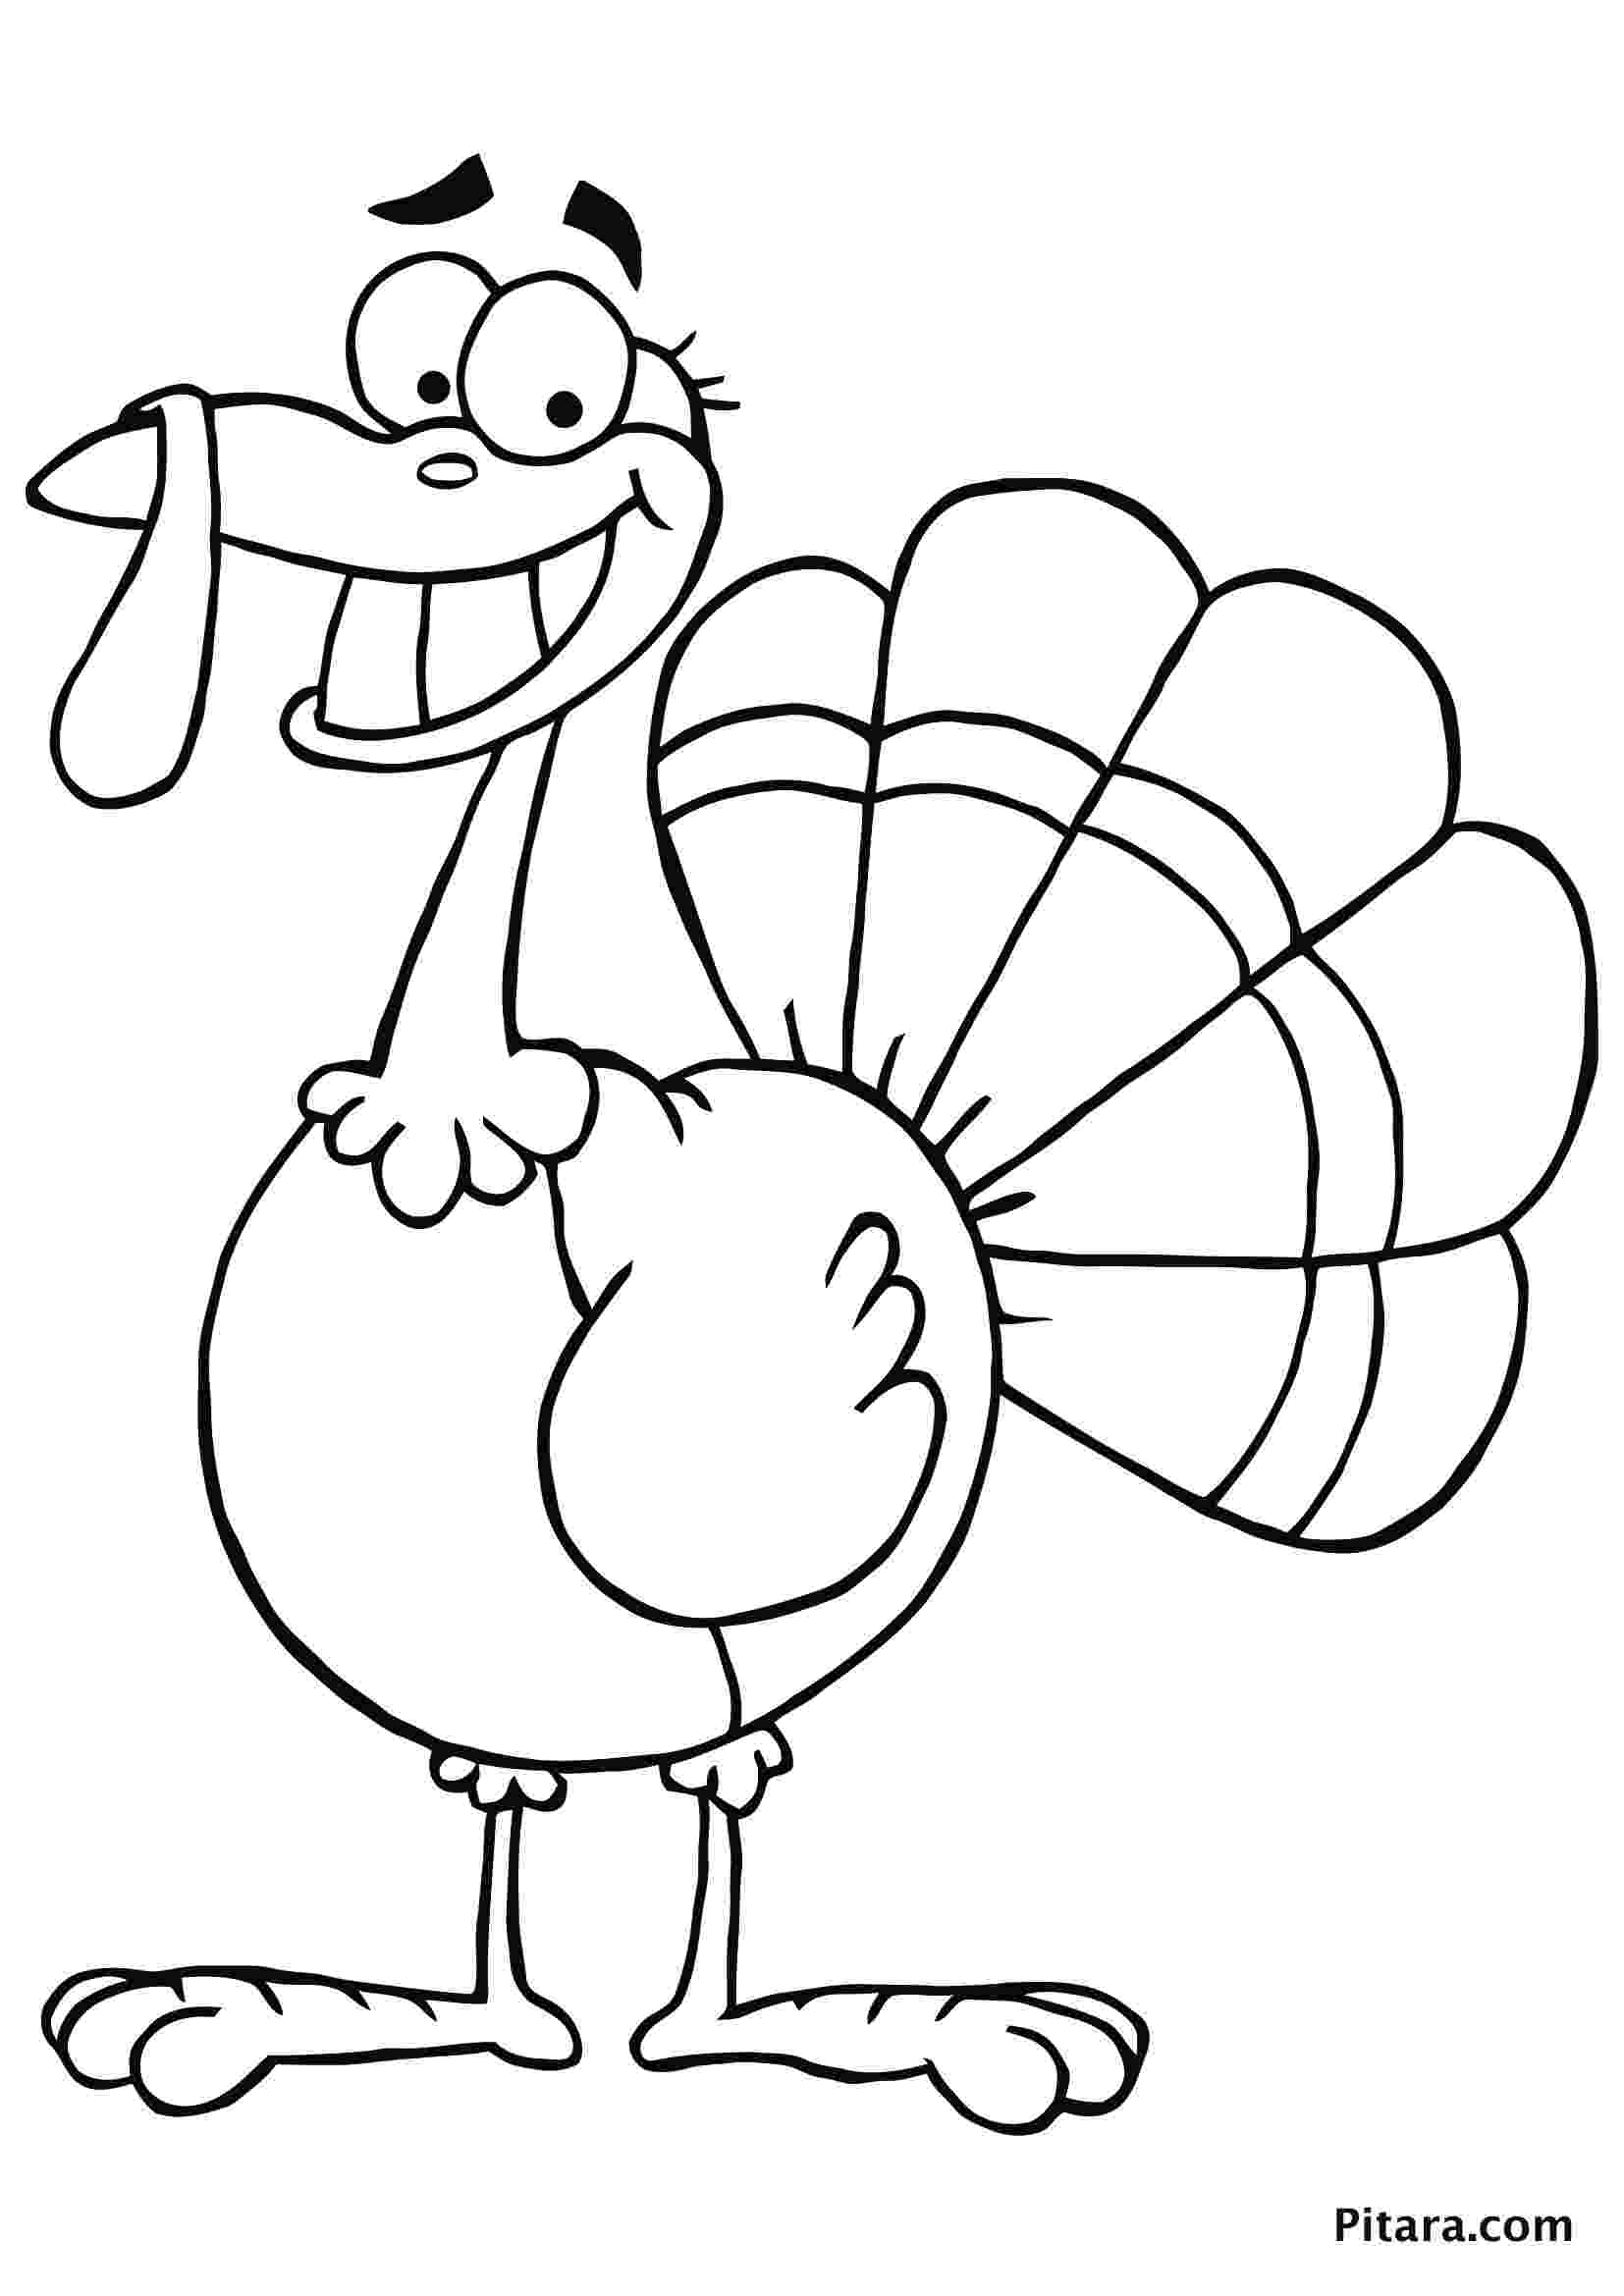 turkey coloring sheet turkey coloring page free large images free sheet turkey coloring